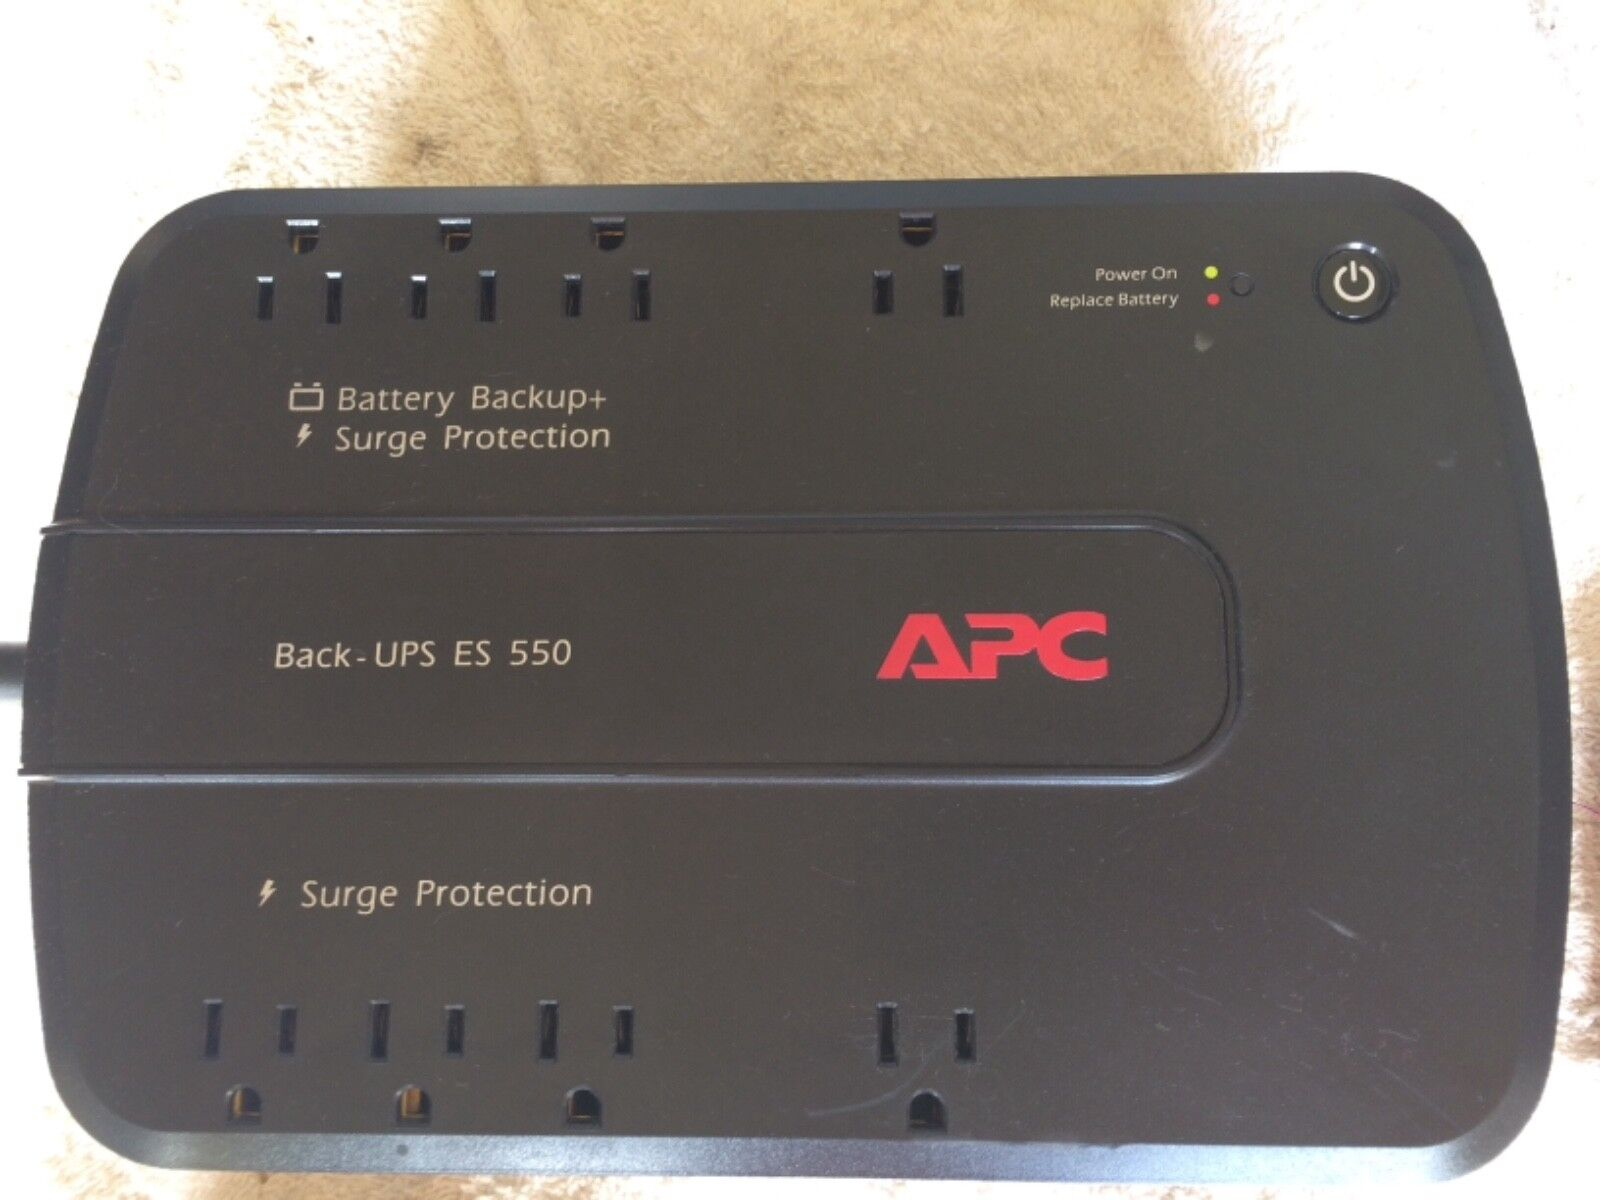 APC Back-UPS ES 550 BE550G , 8 Outlet Battery Backup+ Battery Surge Protection